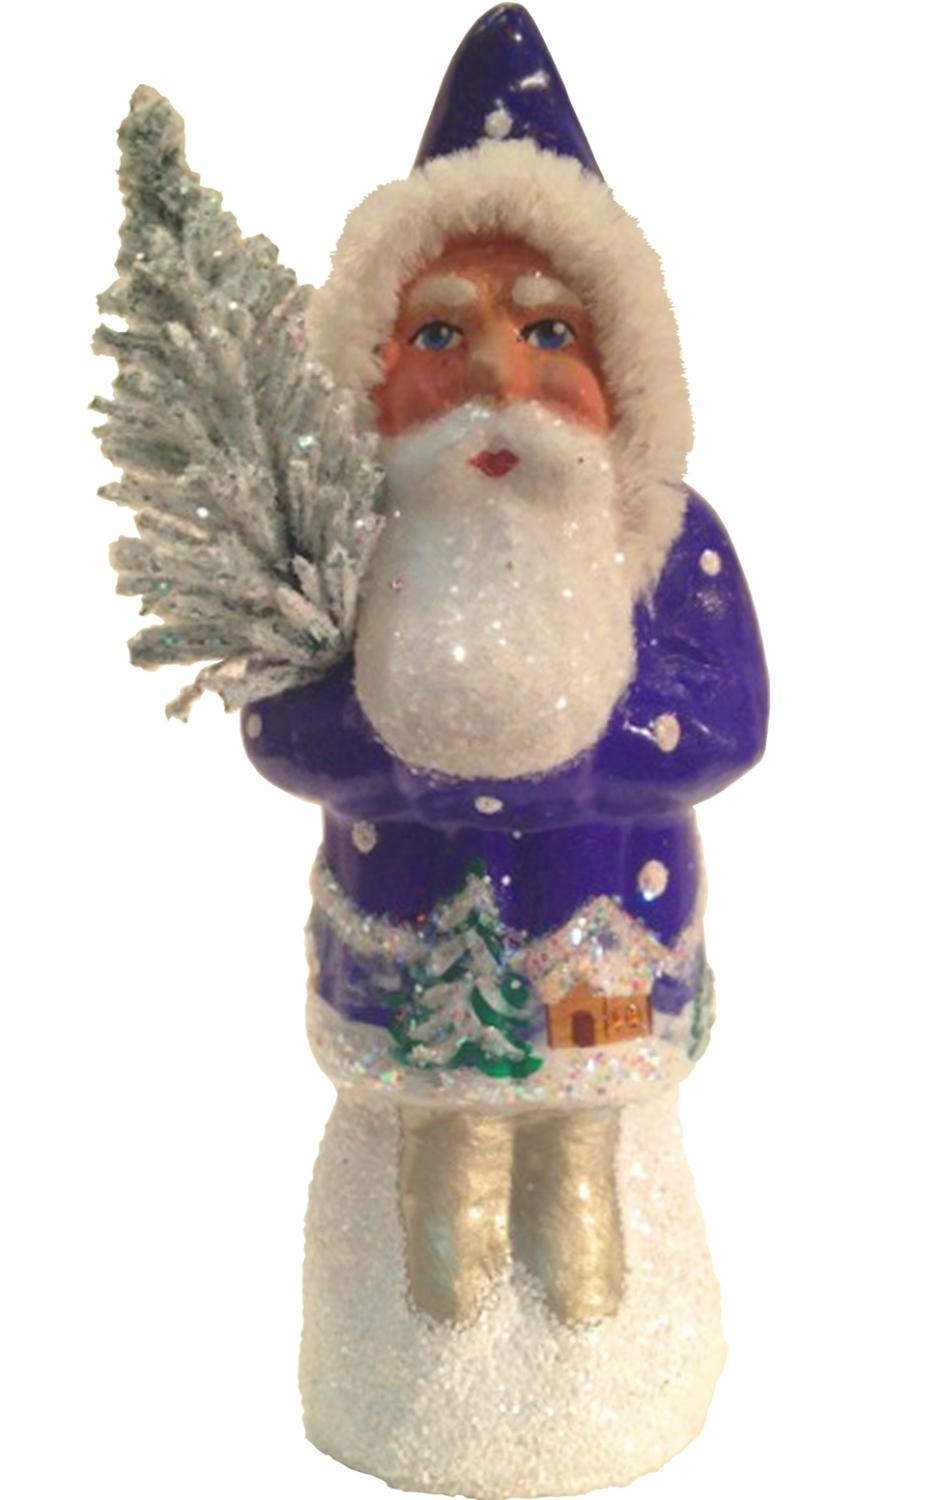 1409 - Schaller Paper Mache Candy Container - Santa Blue Coat with Tree - 3.5